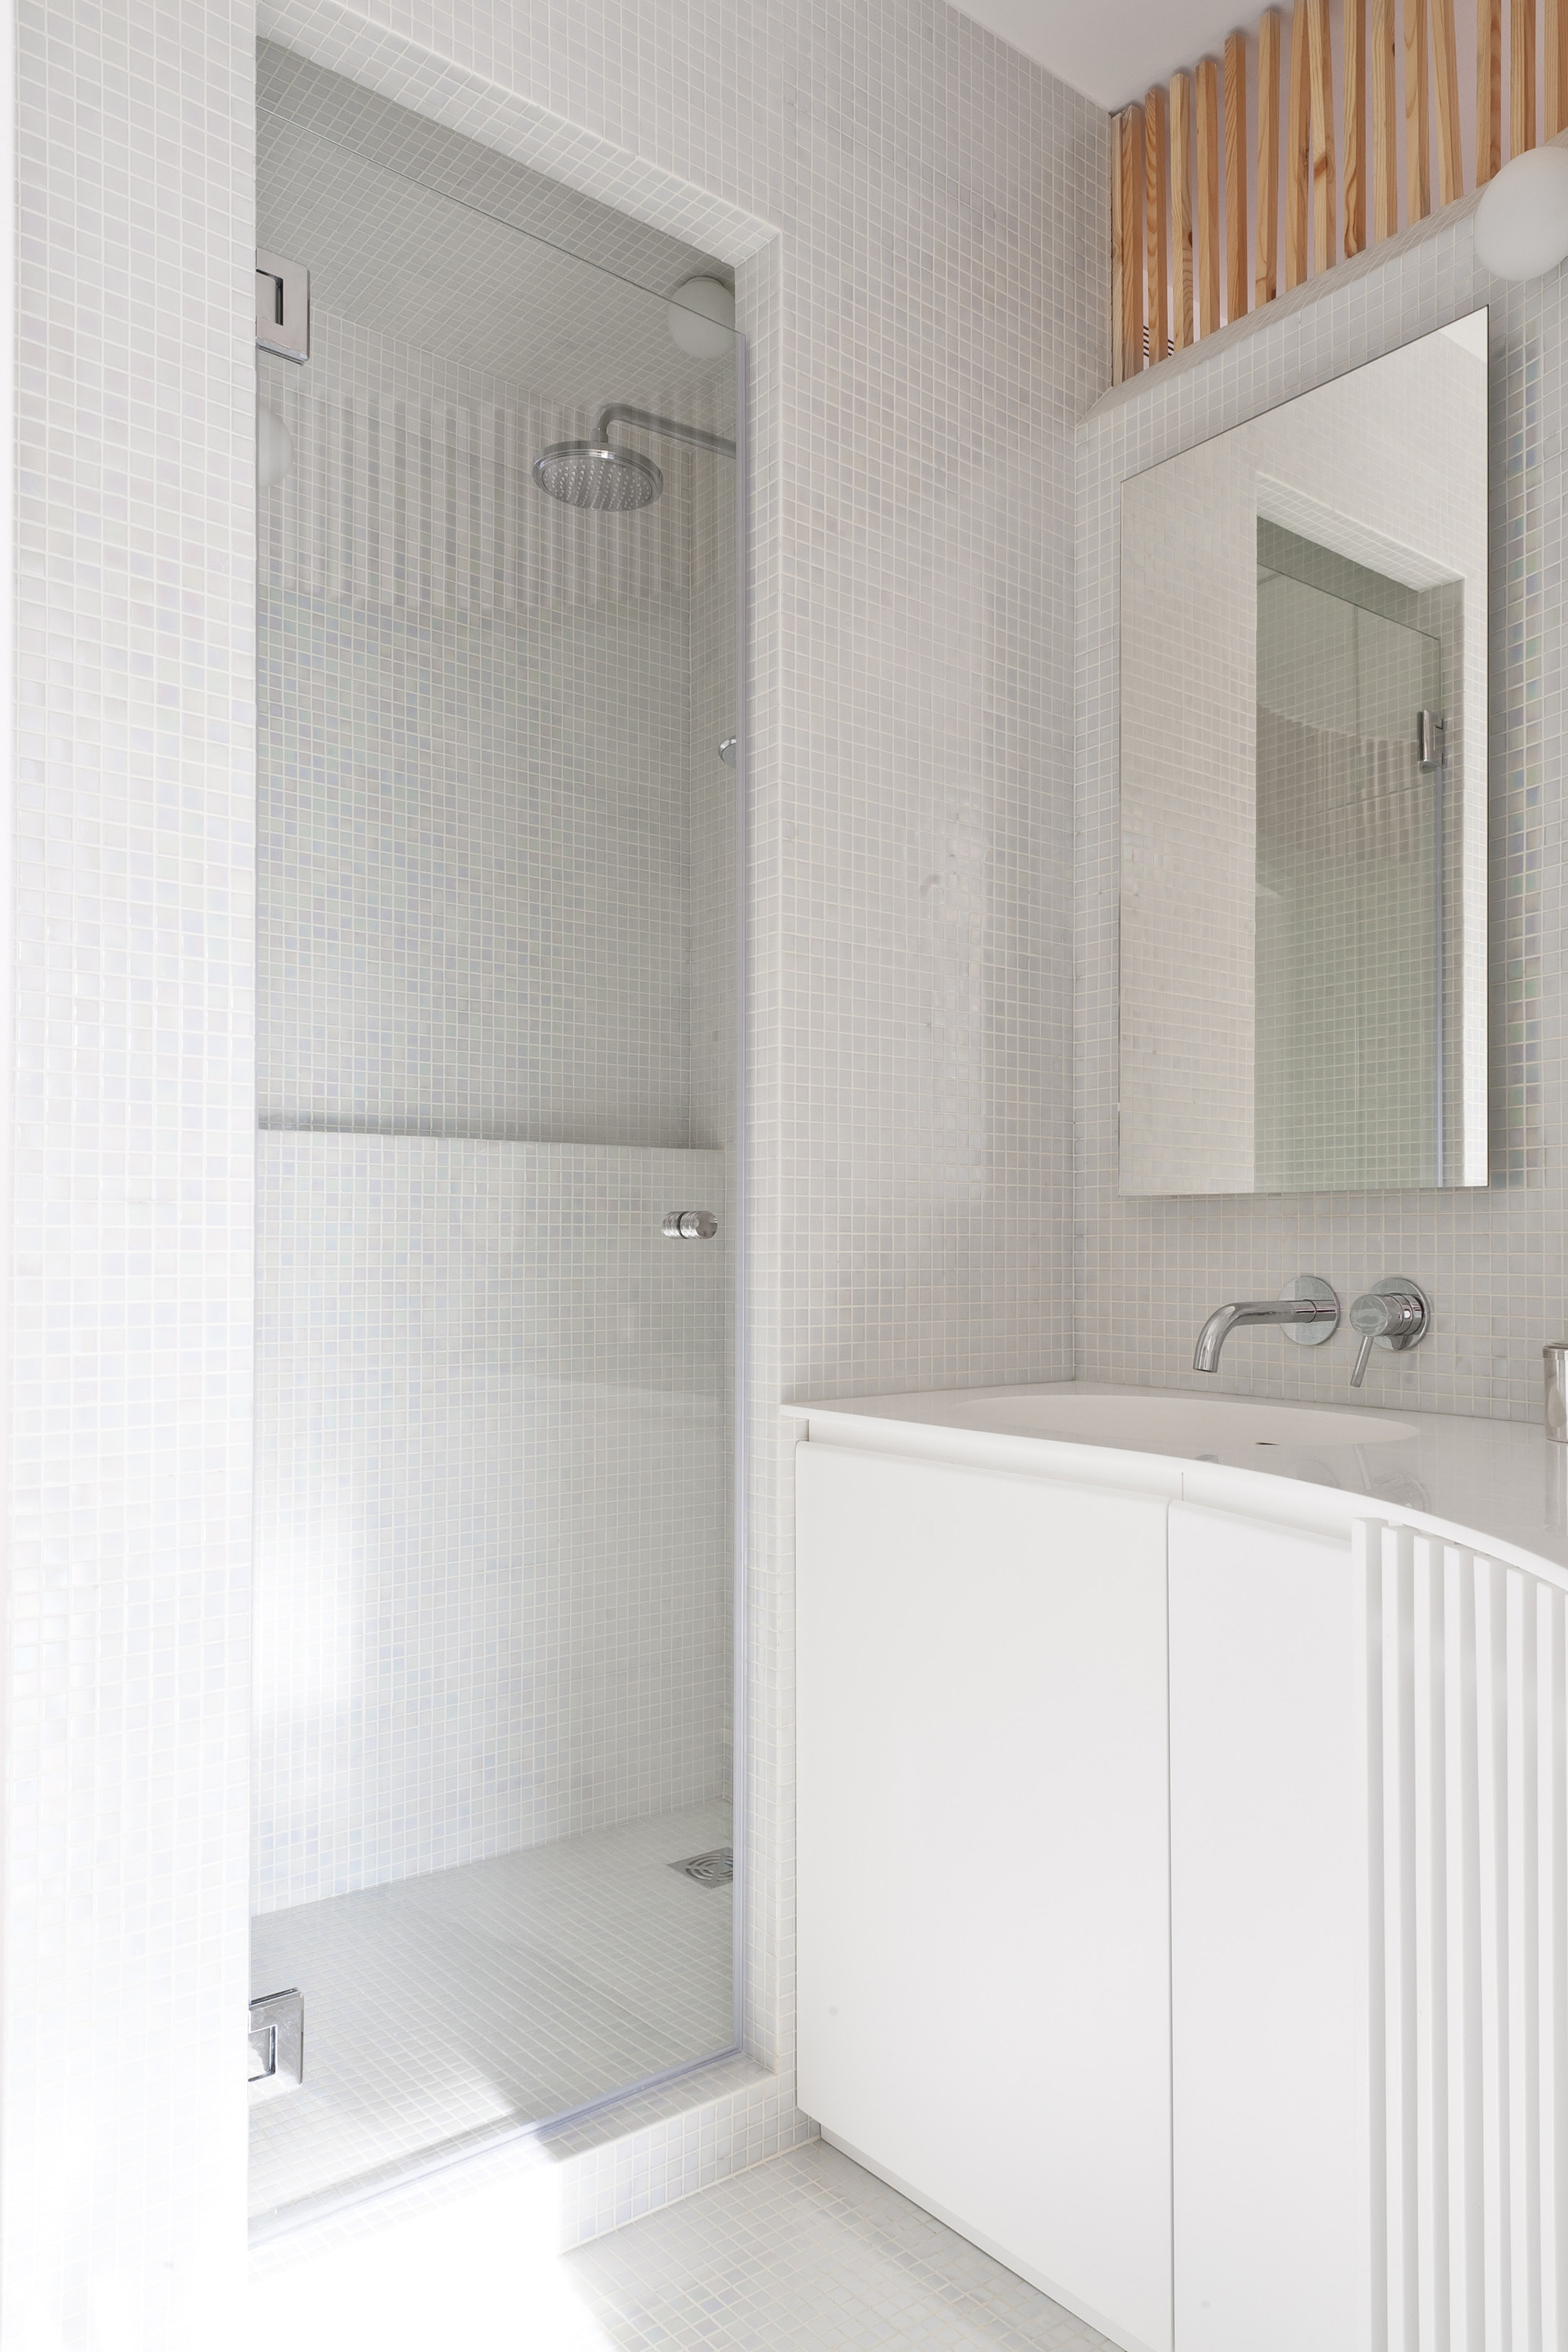 Gallery of Home Renovation / Julien Joly Architecture - 18